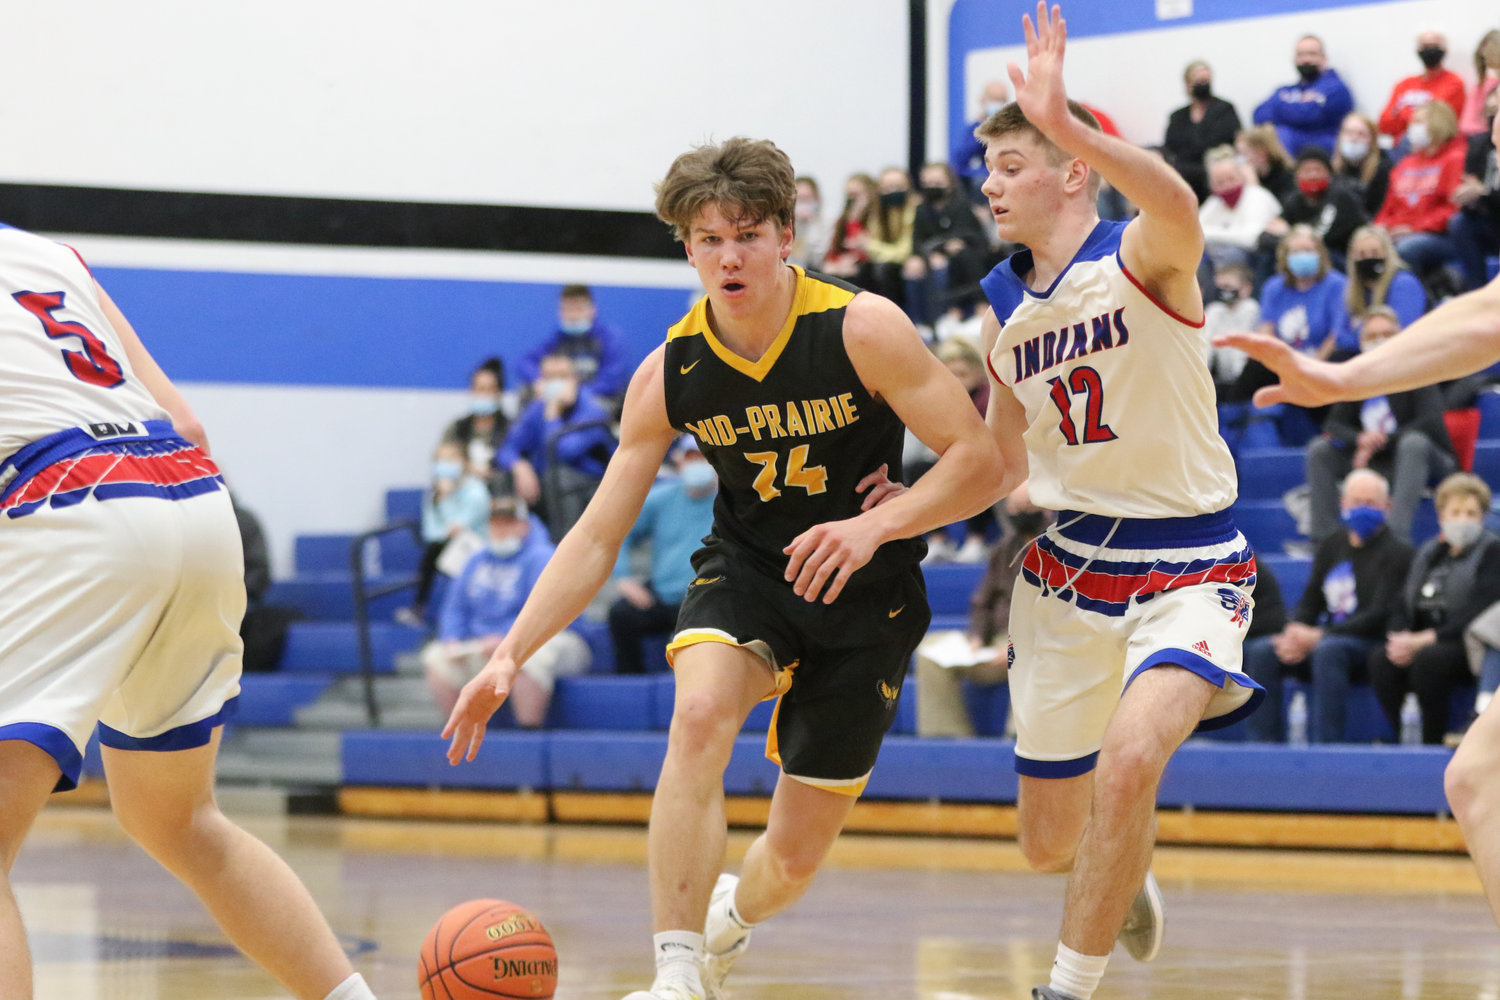 Best overall game: Carter Harmsen in the district final against Camanche. The Mid-Prairie junior scored 32 points on 11-18 shooting against a tough defense that led the RVC North in steals and blocked shots.